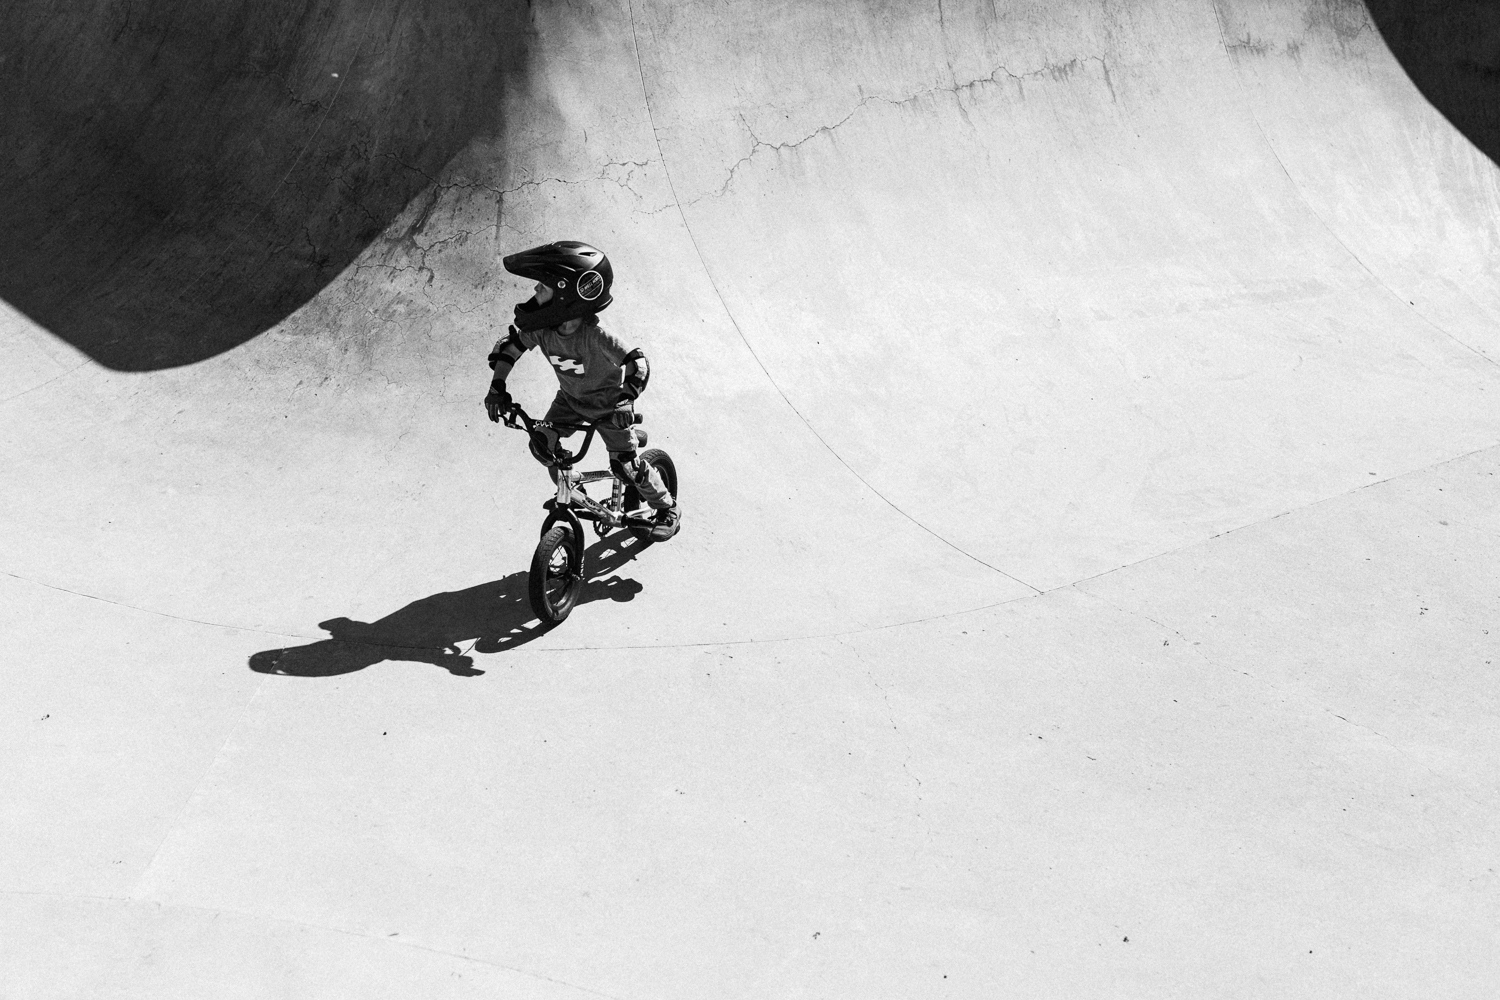 bmx-grom-in-bowl-poway-ca-day-in-the-life-photo-session